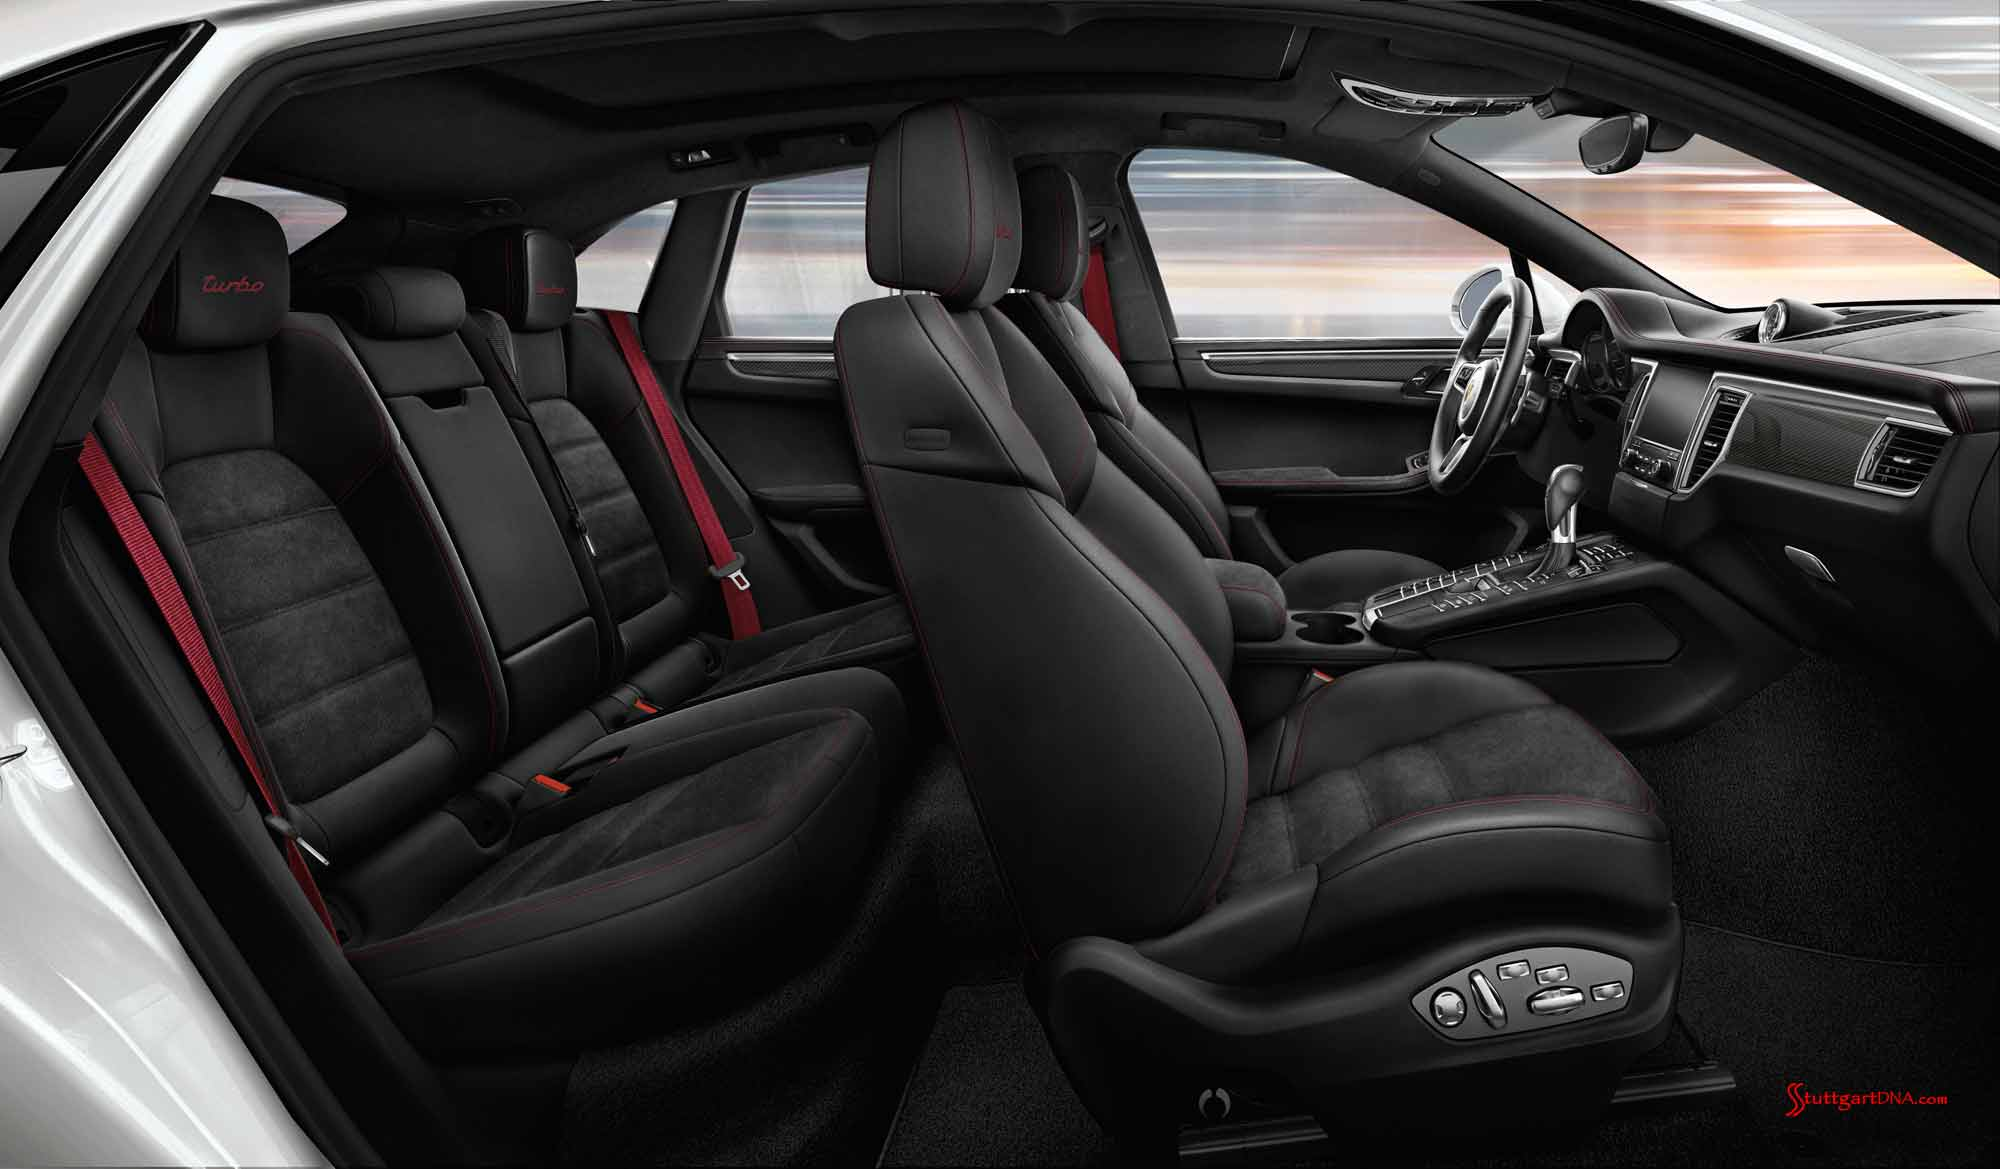 Captivating Macan Turbo Exclusive Packages: Macan Turbo Interior Package 2. Credit:  Porsche AG